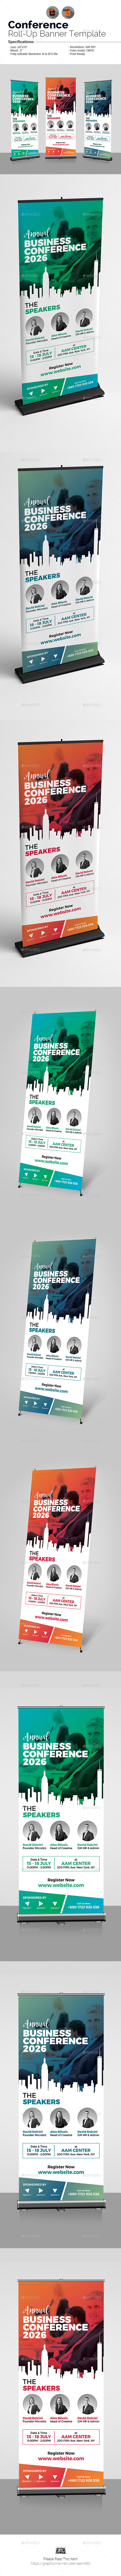 Business Conference Roll-Up - Signage Print Templates